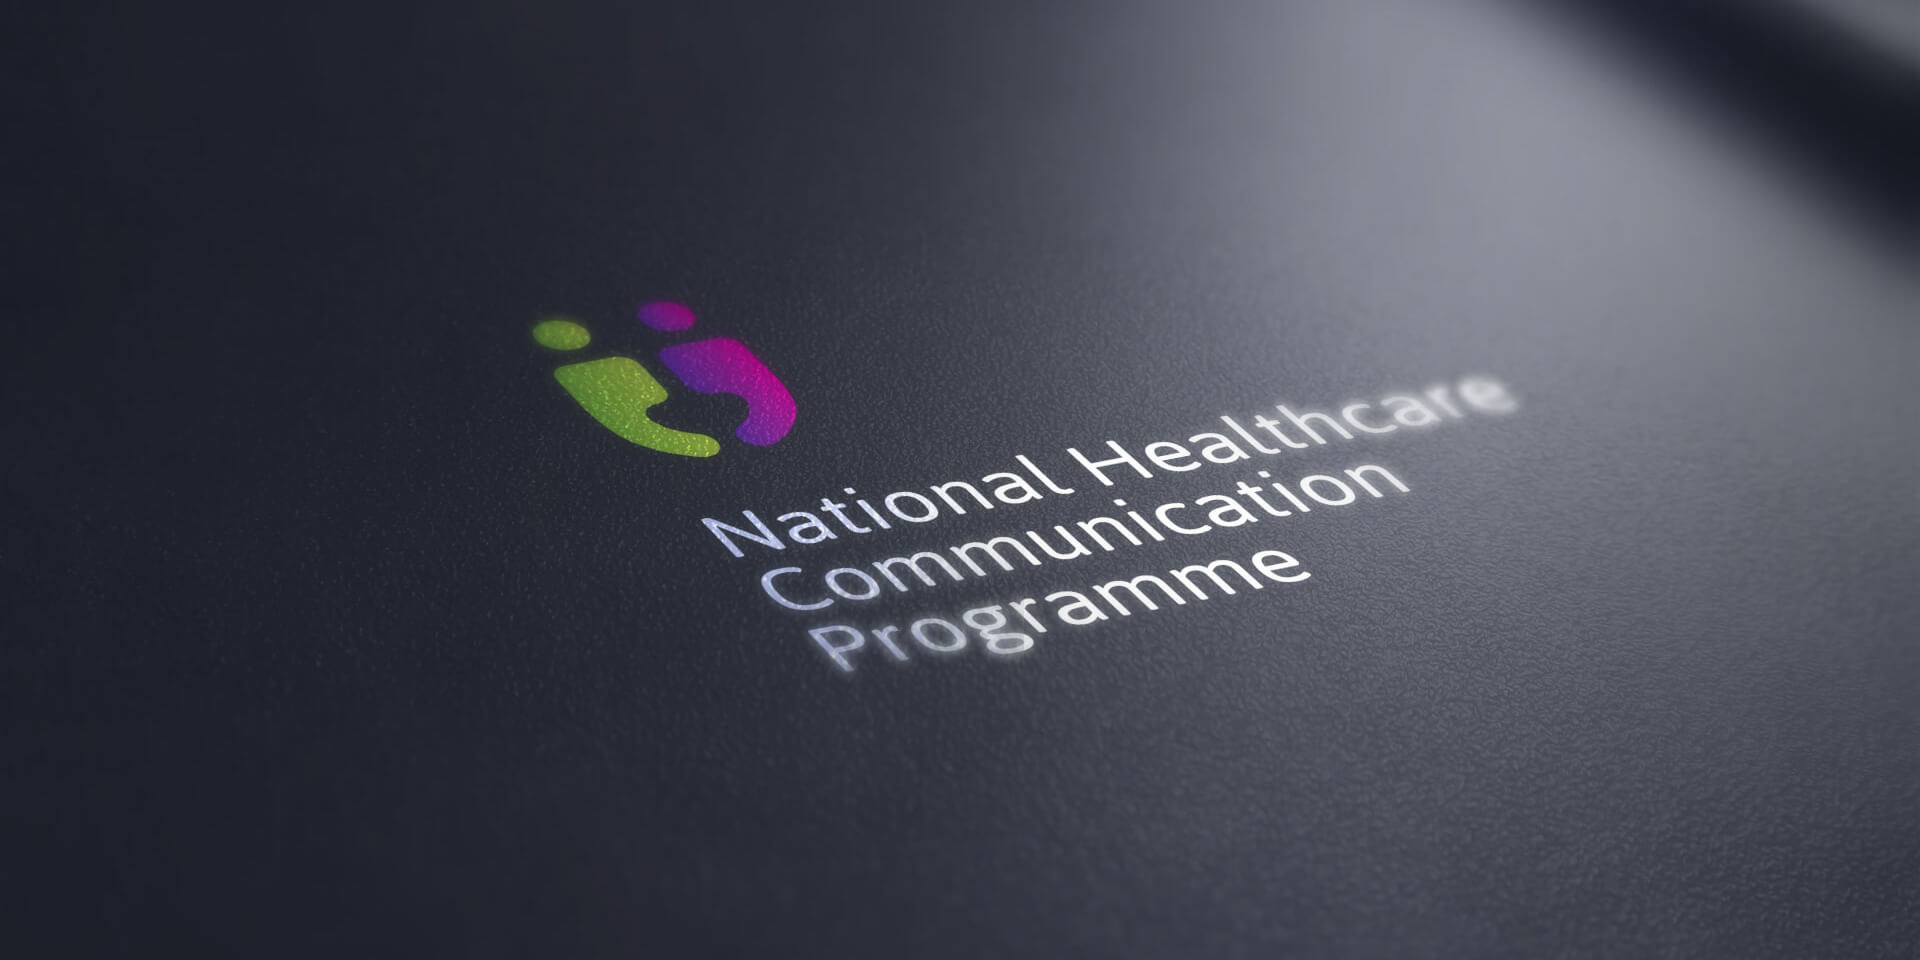 HSE National healthcare communication programme logo